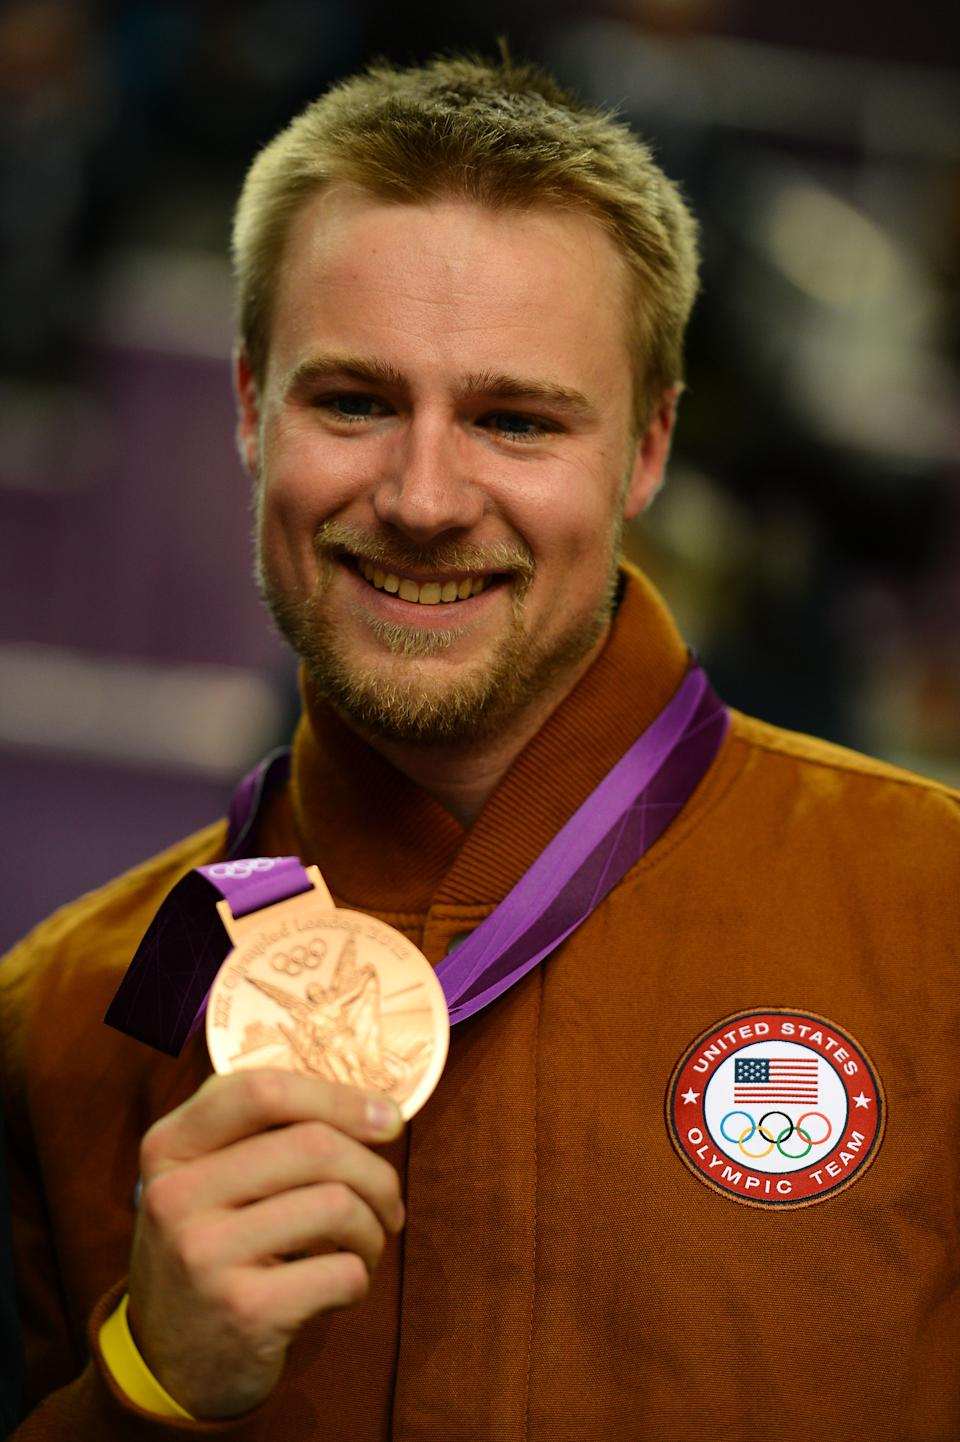 """<a href=""""http://sports.yahoo.com/olympics/shooting/matthew-emmons-1132818/"""" data-ylk=""""slk:Matthew Emmons"""" class=""""link rapid-noclick-resp"""">Matthew Emmons</a> of the United States won a bronze medal poses for the Men's 50m Rifle 3 Positions Shooting Final on Day 10 of the London 2012 Olympic Games at the Royal Artillery Barracks on August 6, 2012 in London, England. (Photo by Lars Baron/Getty Images)"""